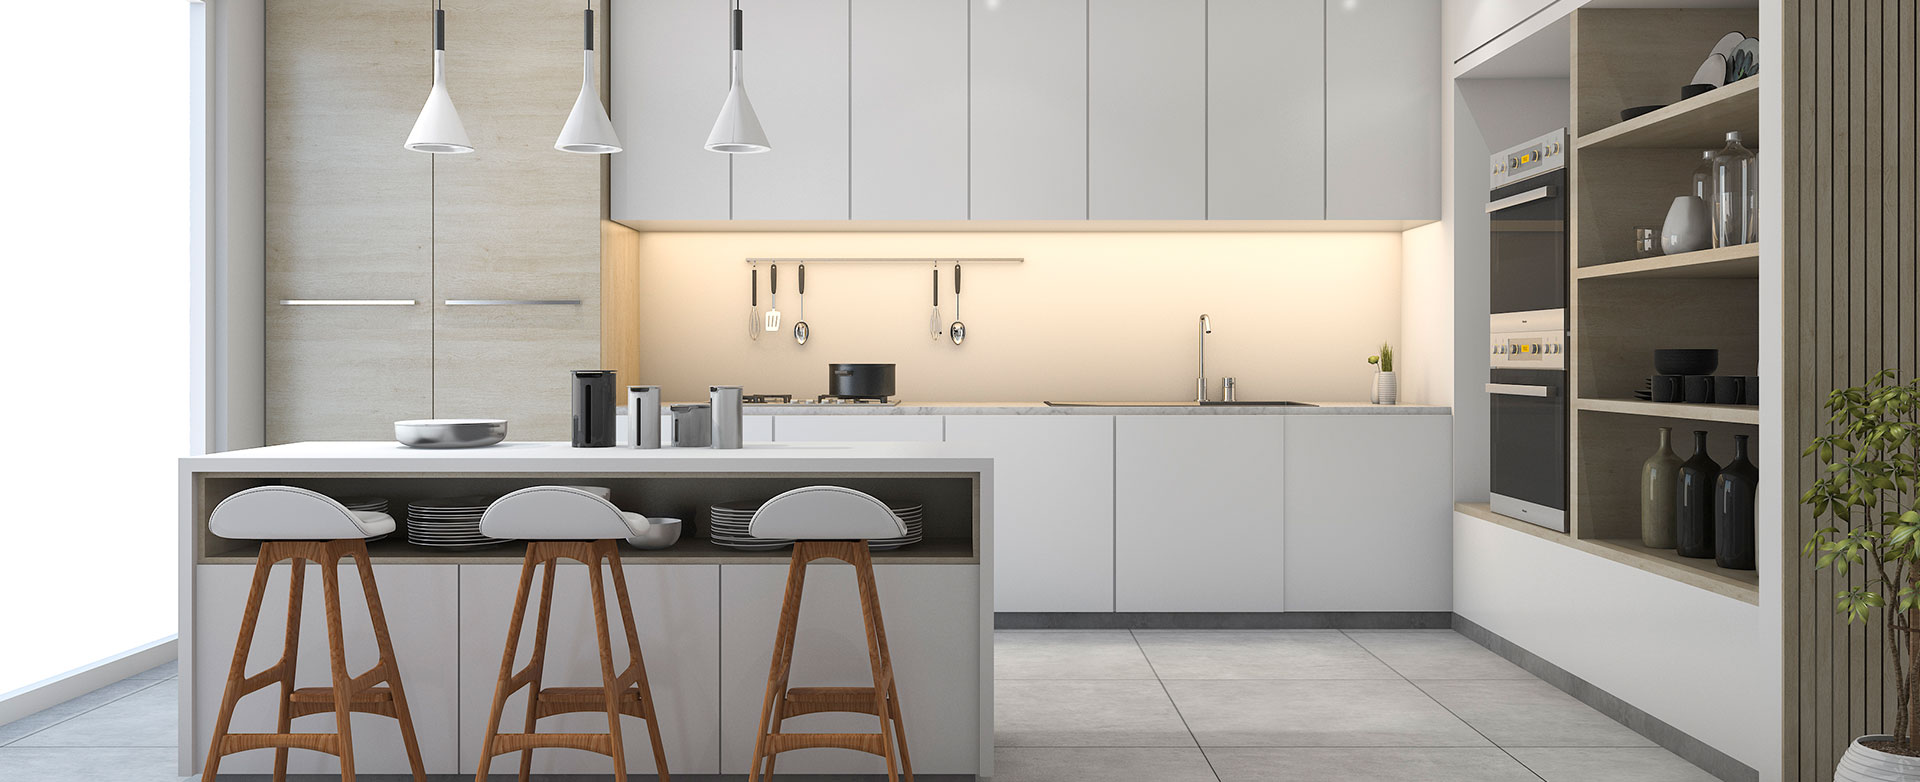 Silicon Valley Kitchen Remodeling image